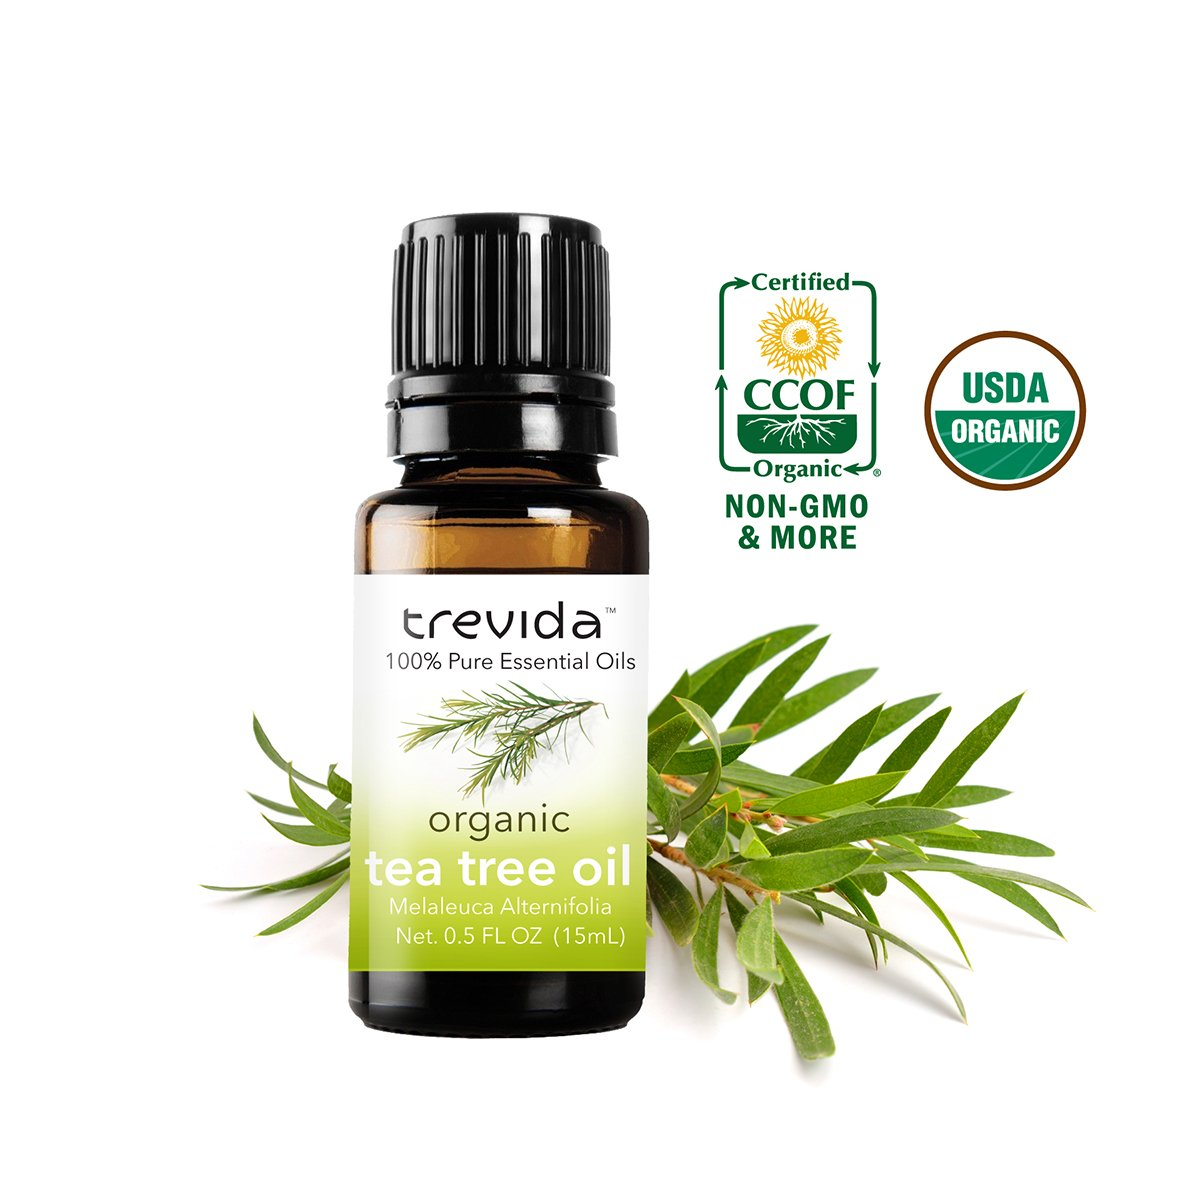 Trevida USDA Certified Organic Tea Tree Essential Oil | Melaleuca Alternifolia | 15 ml | Bottled in USA | 100 % Pure Undiluted | For Acne, Skin Tags, Warts, Toenail Fungus, Insect Repellent & More